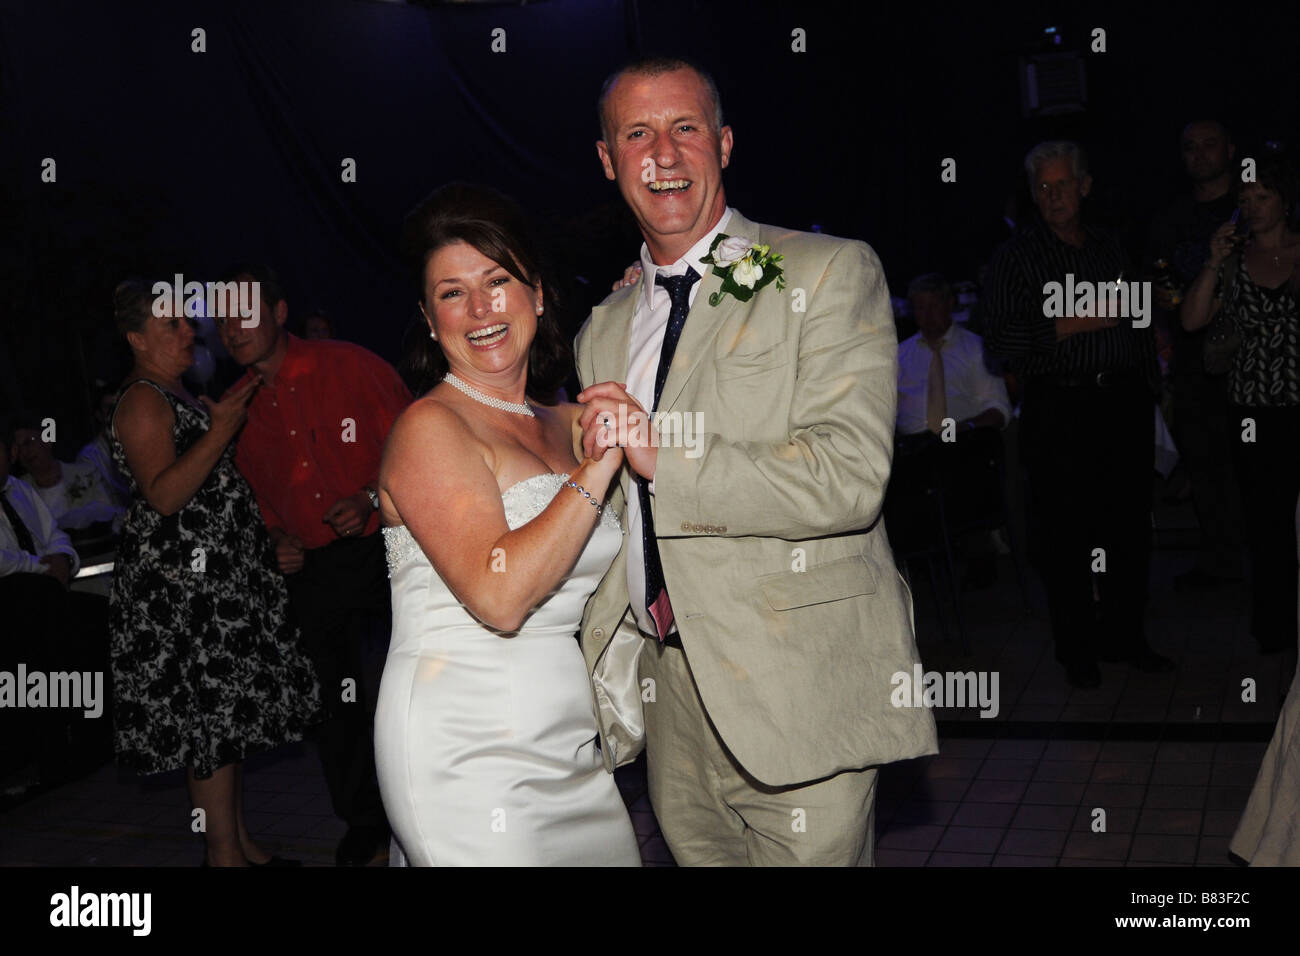 A Newly wed couple dance at their reception party, West Yorkshire Model Released - Stock Image